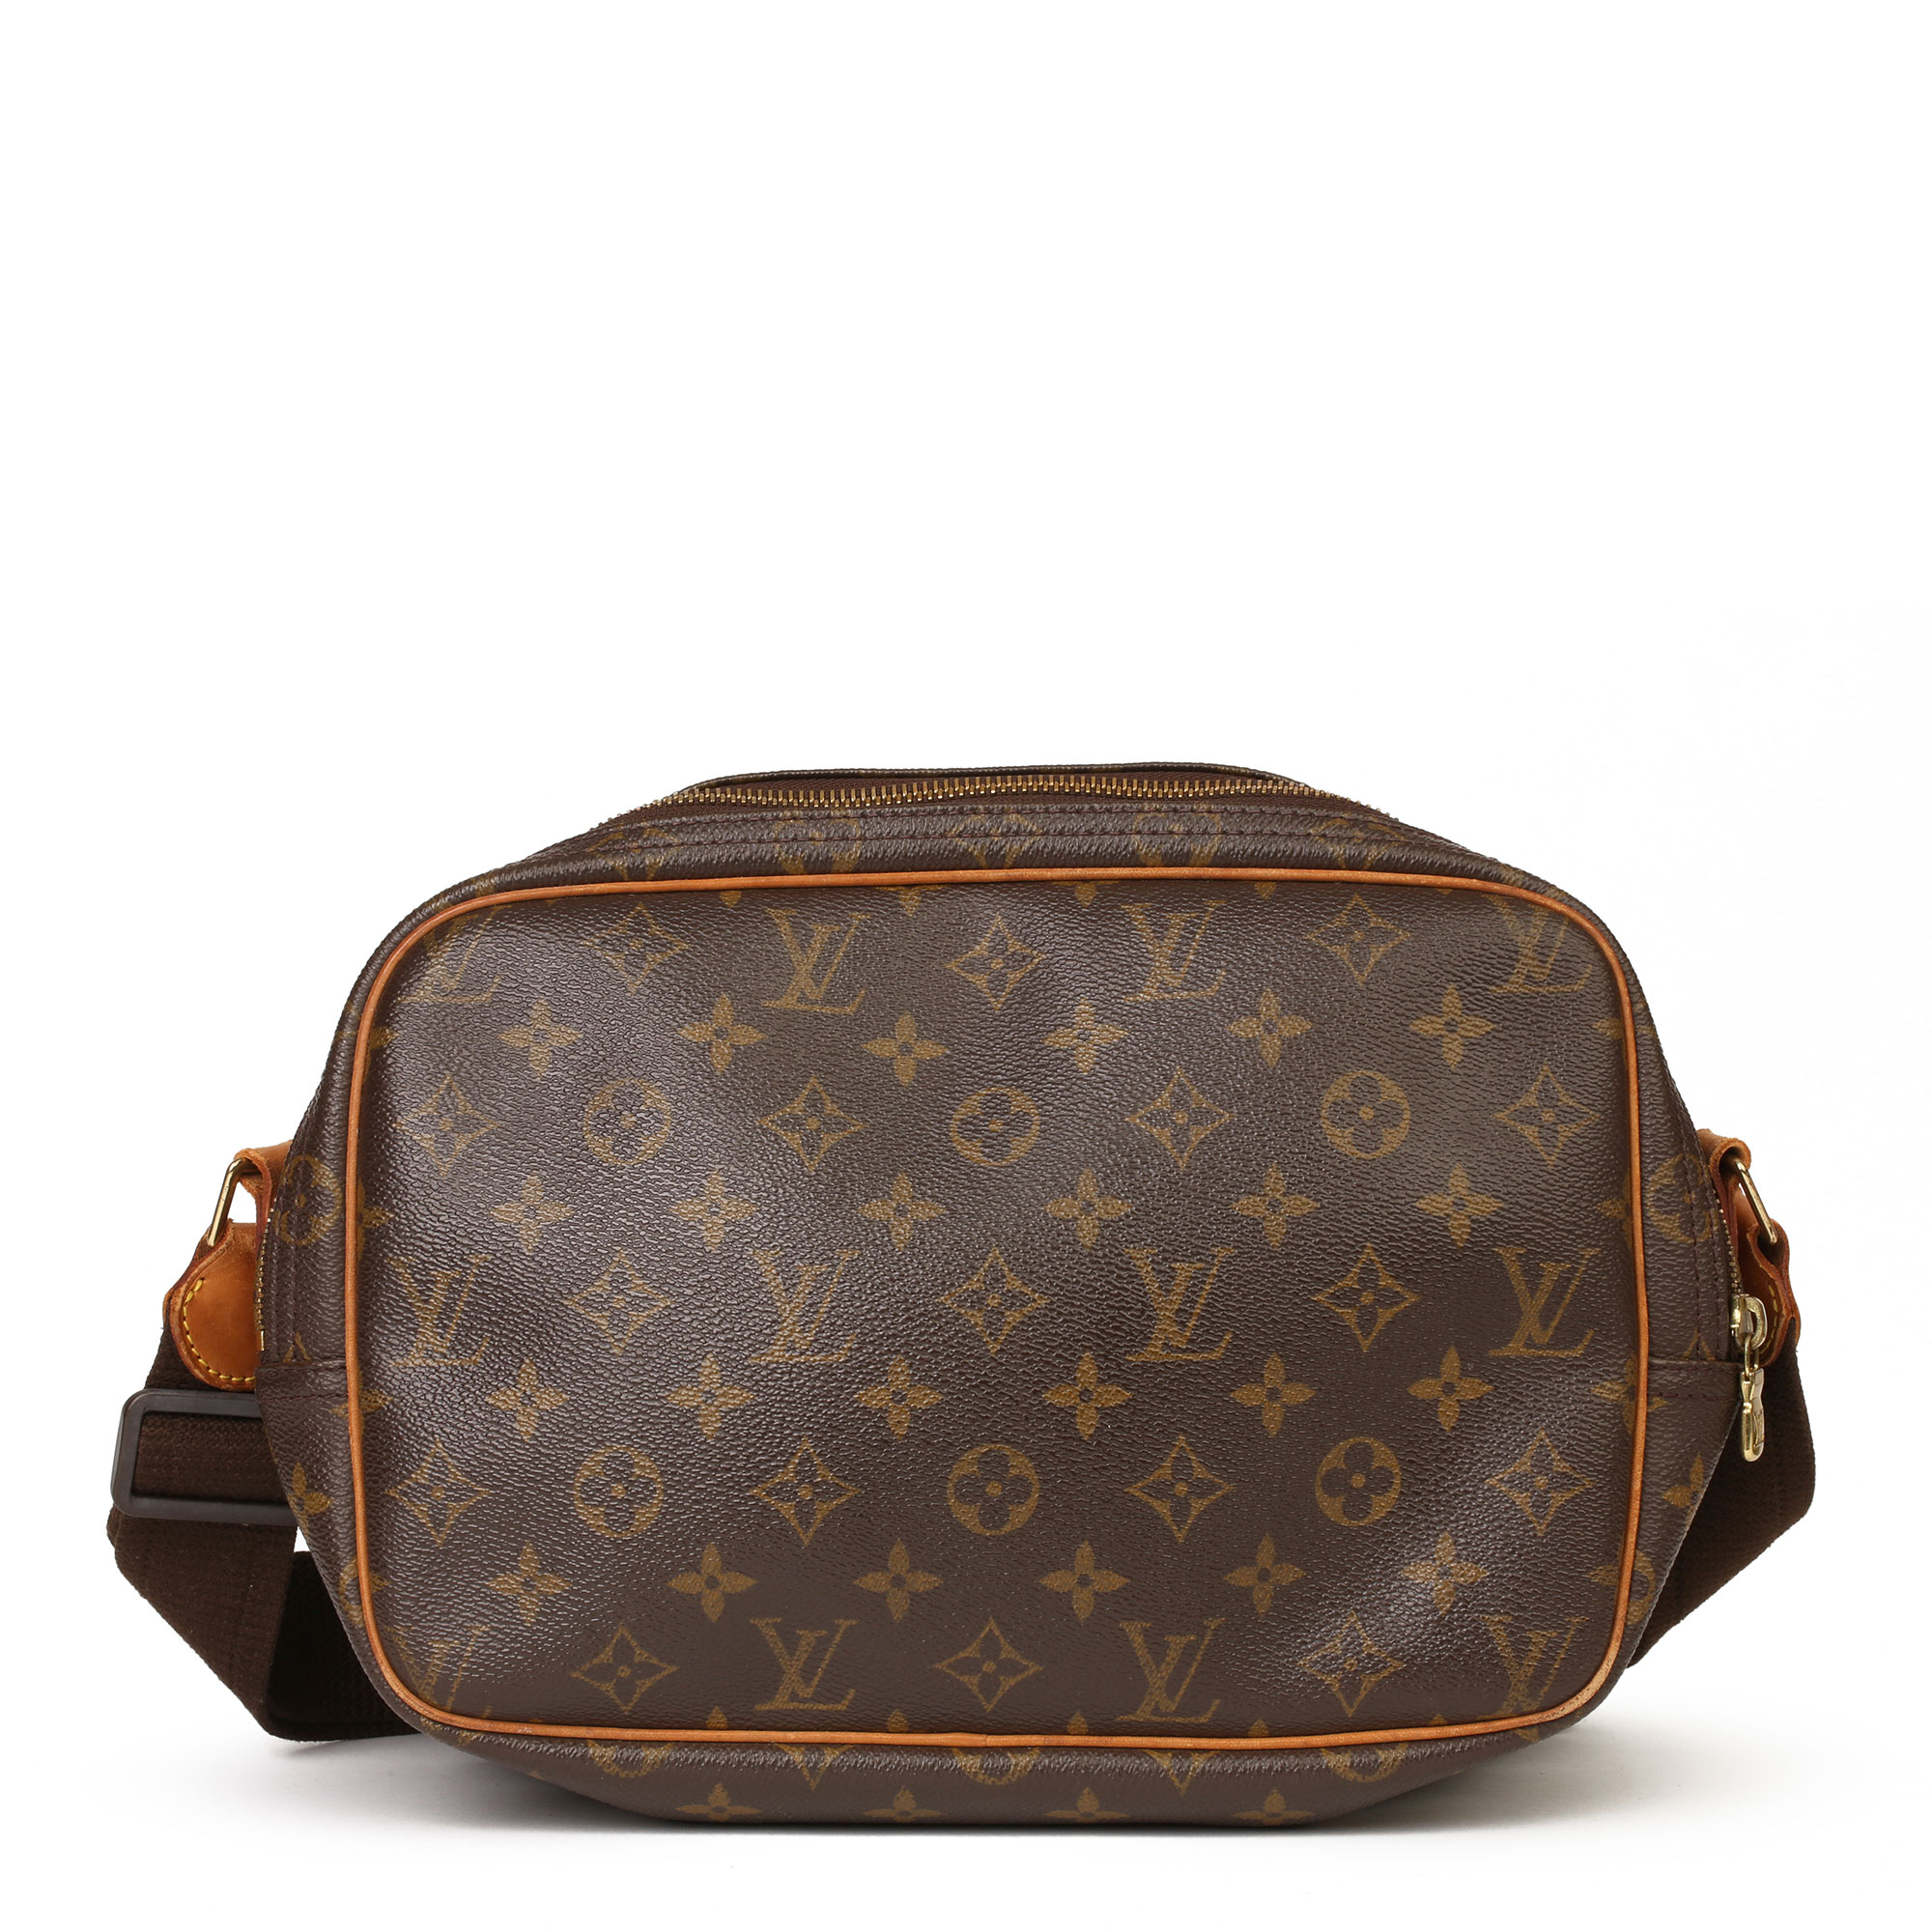 Louis Vuitton Brown Monogram Coated Canvas Vintage Reporter PM - Image 9 of 11